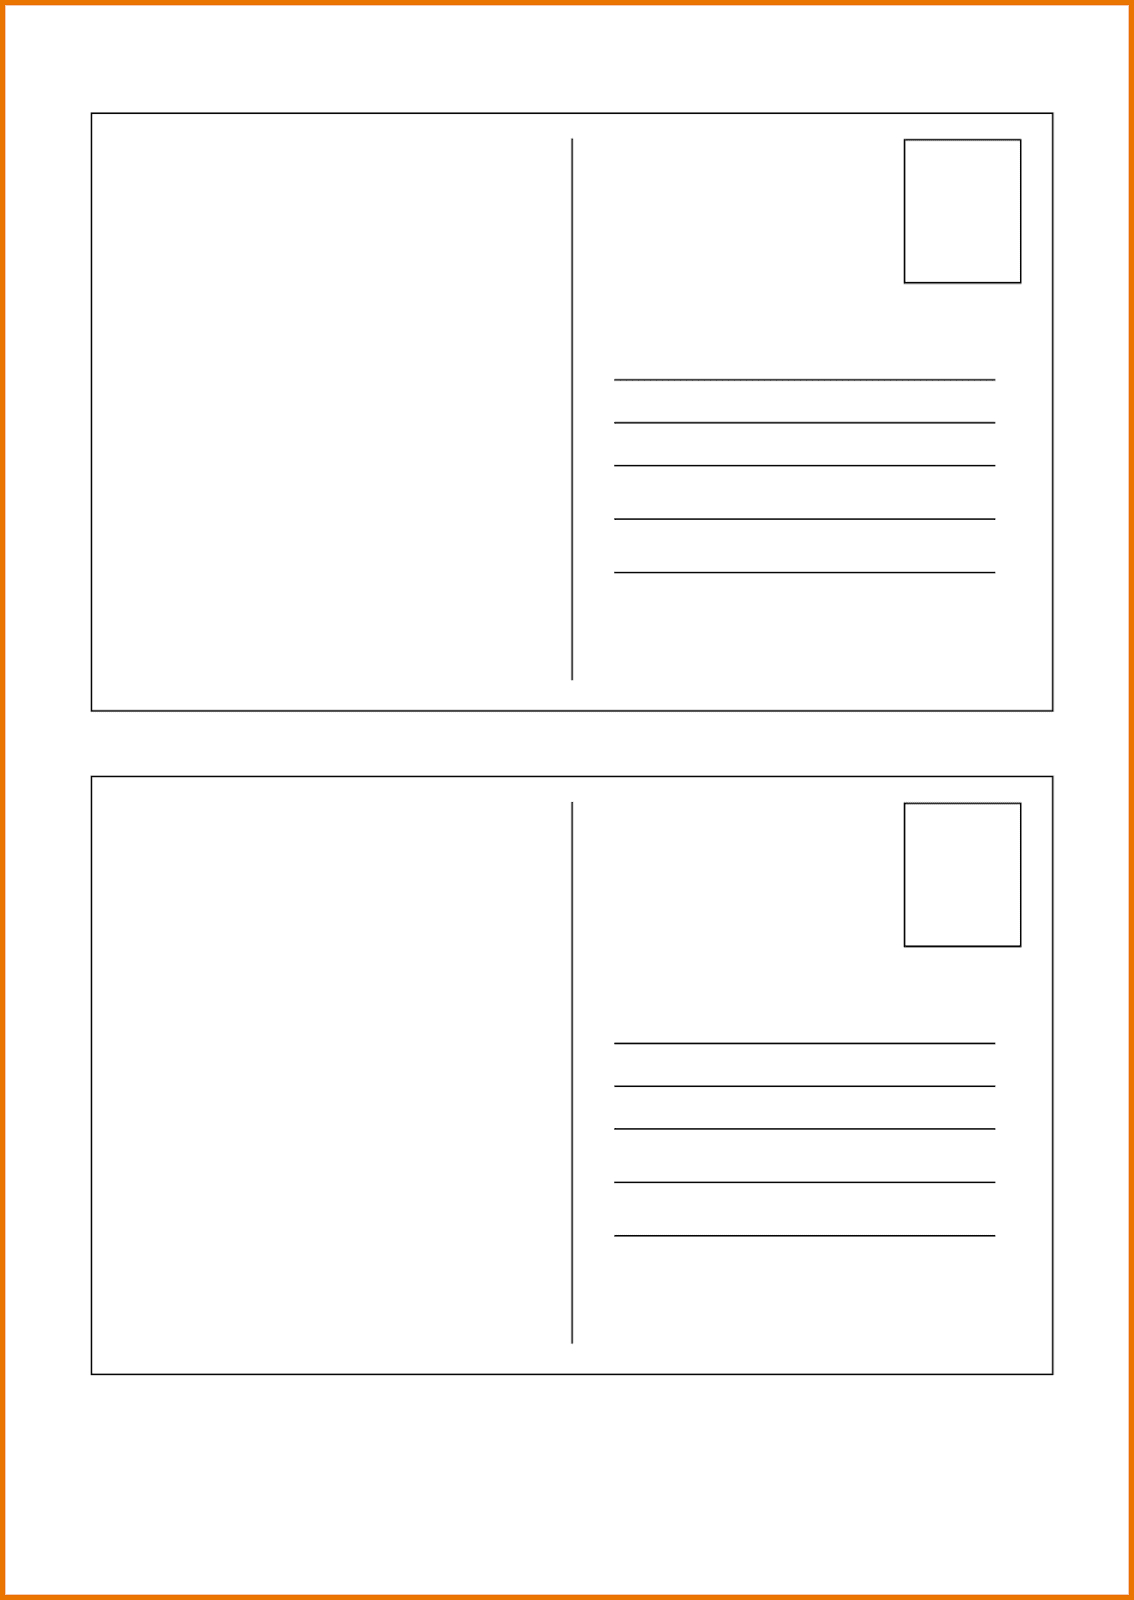 Template Ideas Free Postcard Templates For Word Excellent Intended For Free Blank Postcard Template For Word